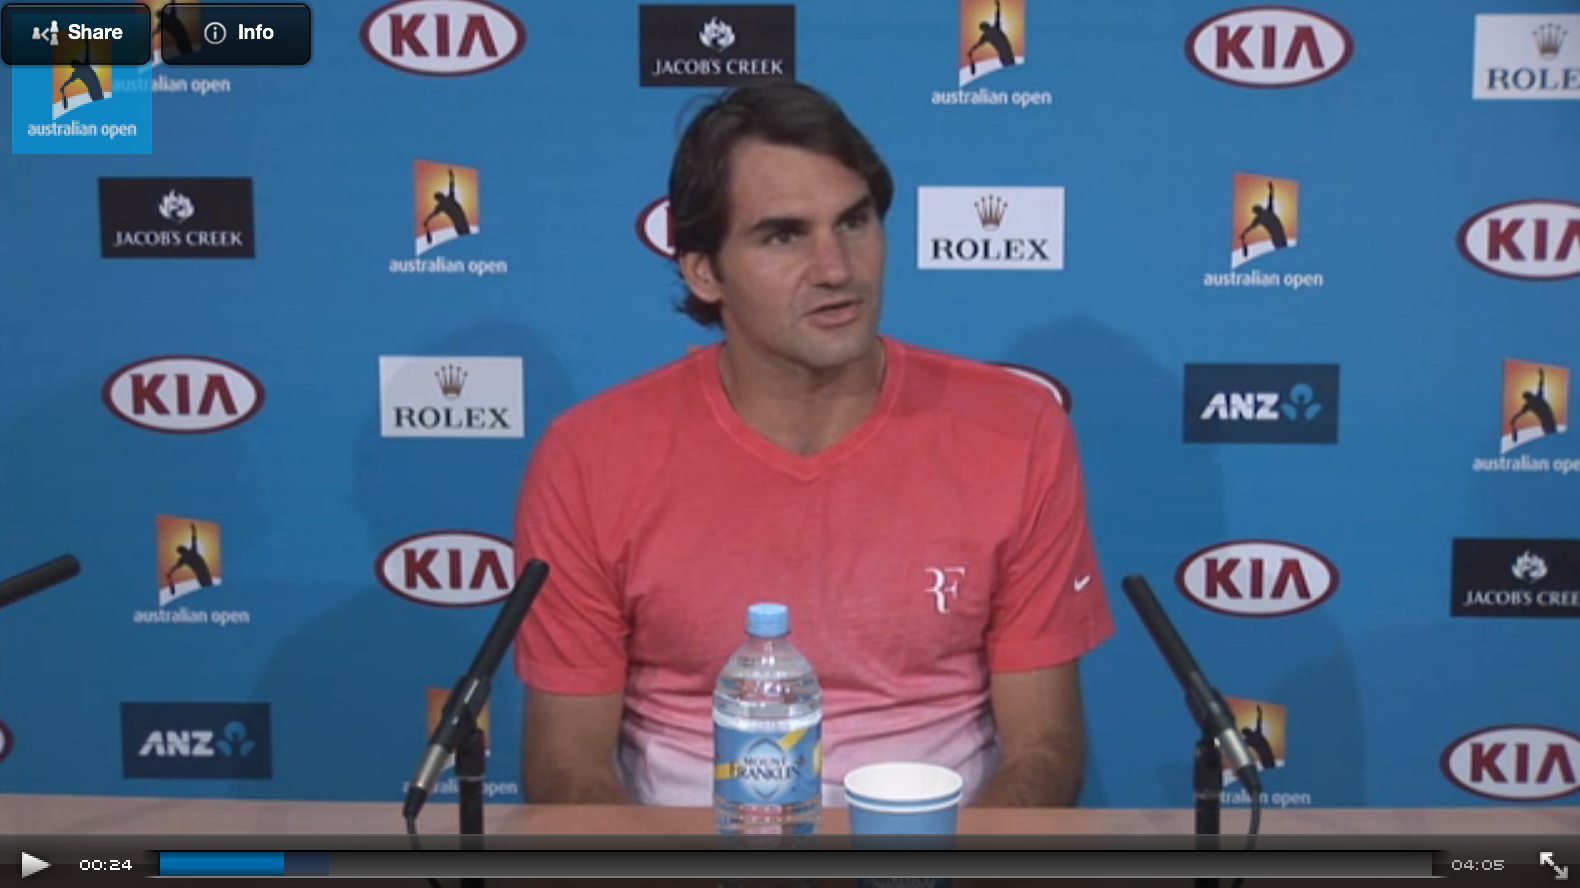 Roger Federer 2014 Australian Open 4th Round Press Conference